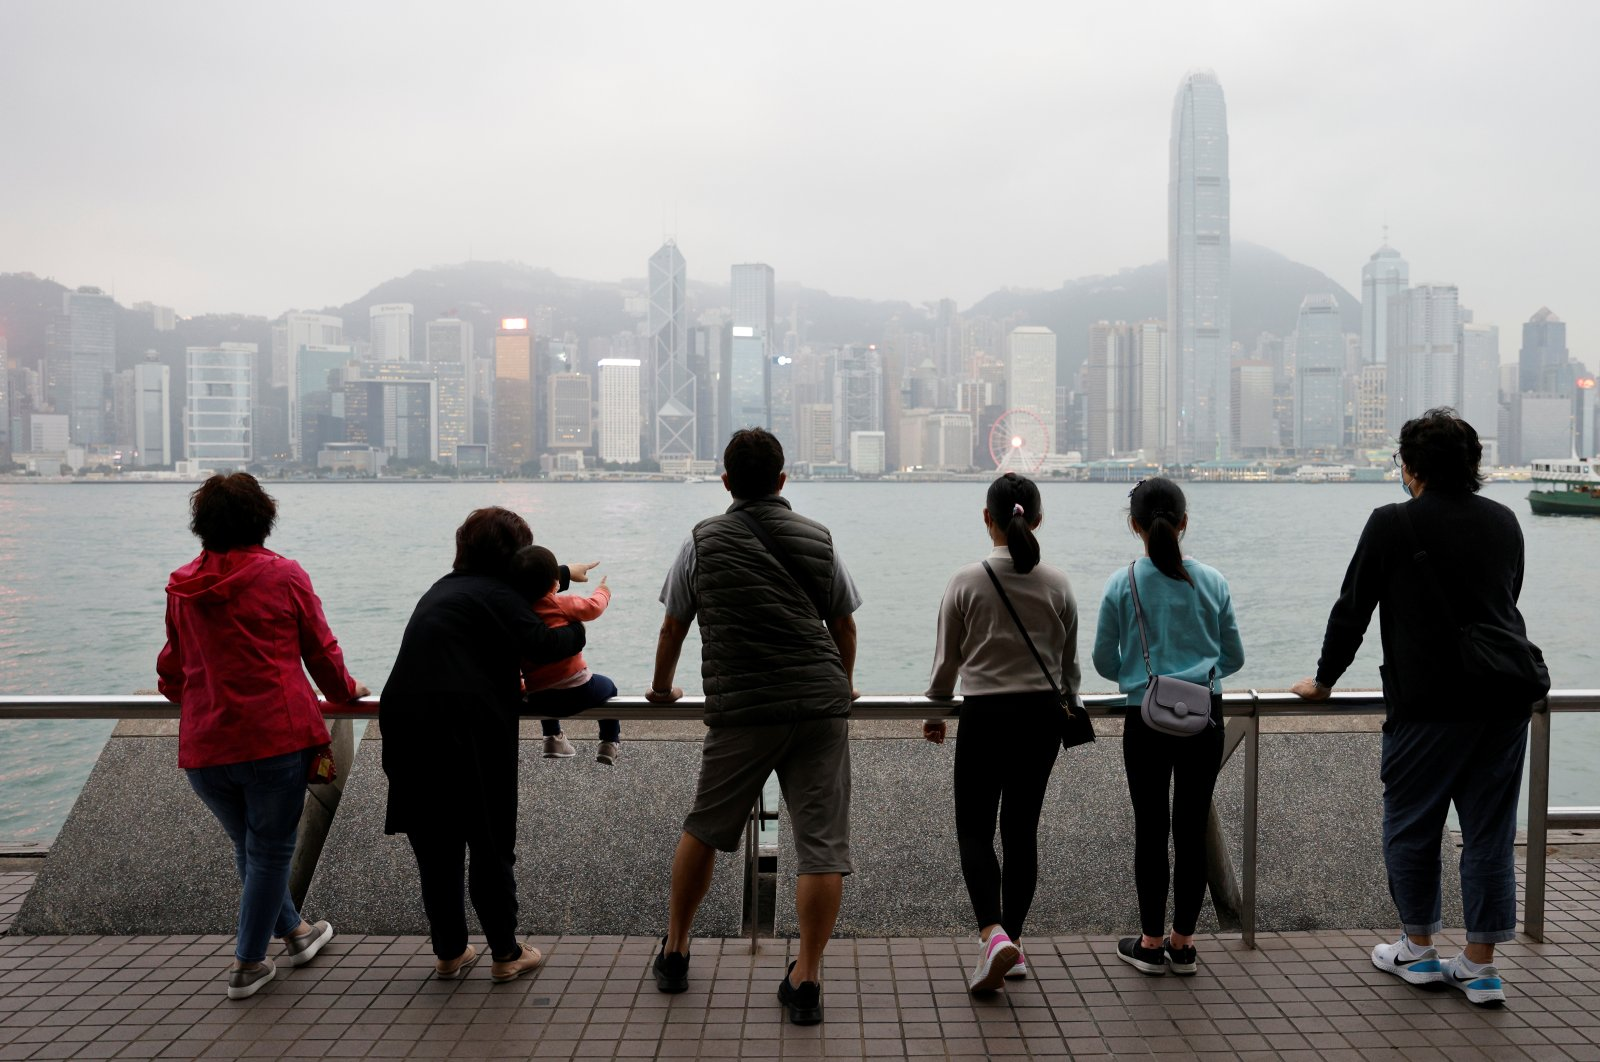 The Lai family, who are emigrating to Scotland, look out over the city's skyline on a outing to Tsim Sha Tsui in Hong Kong, China, Dec. 14, 2020. (Reuters Photo)